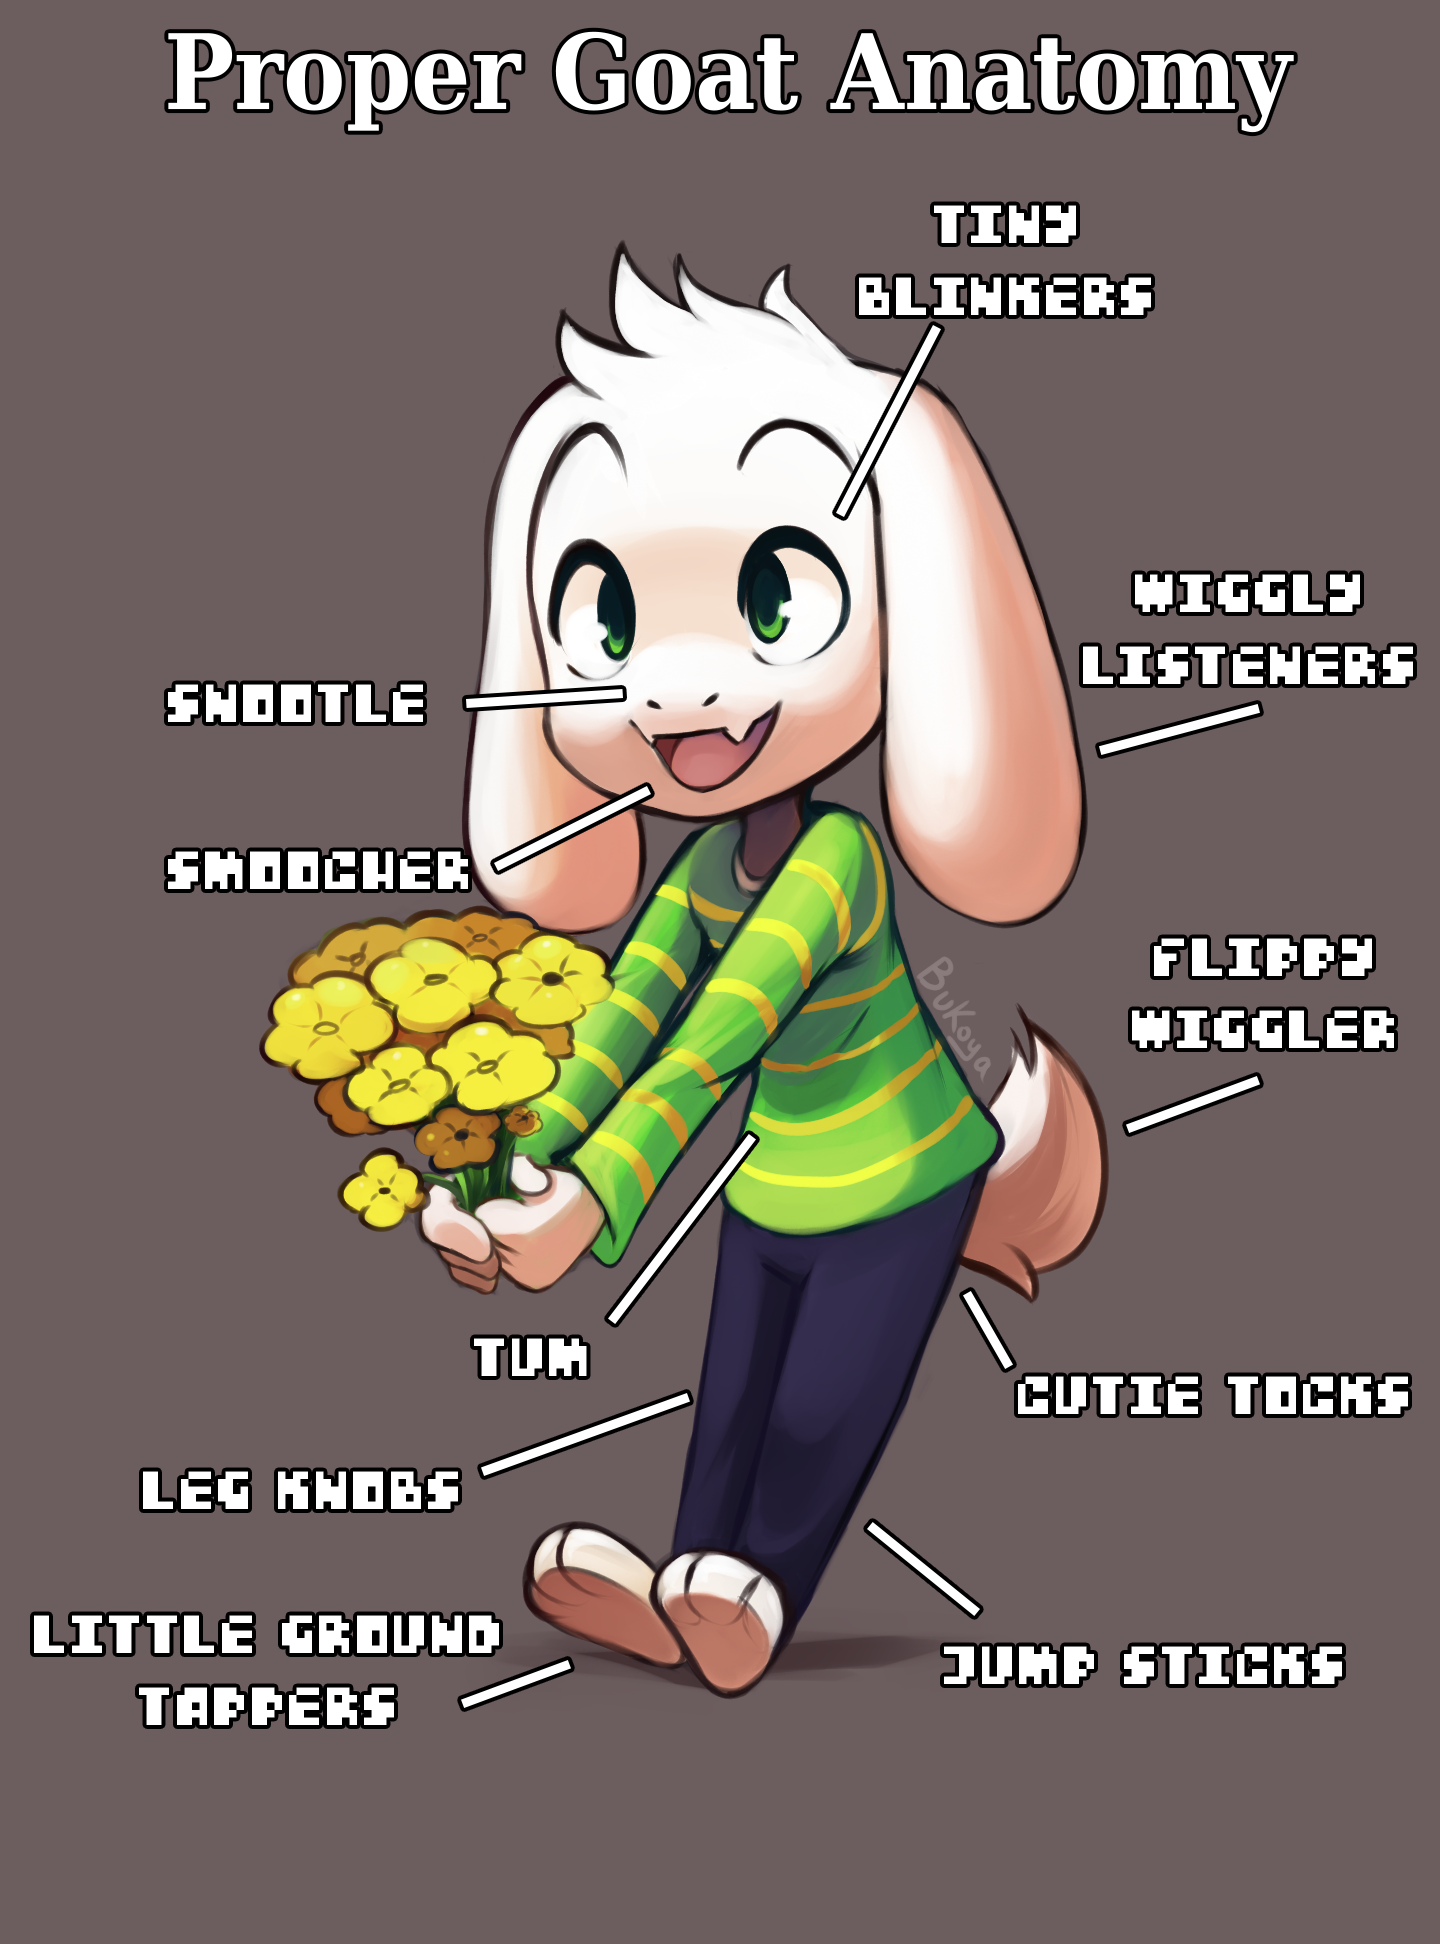 Proper goat anatomy | Undertale | Know Your Meme